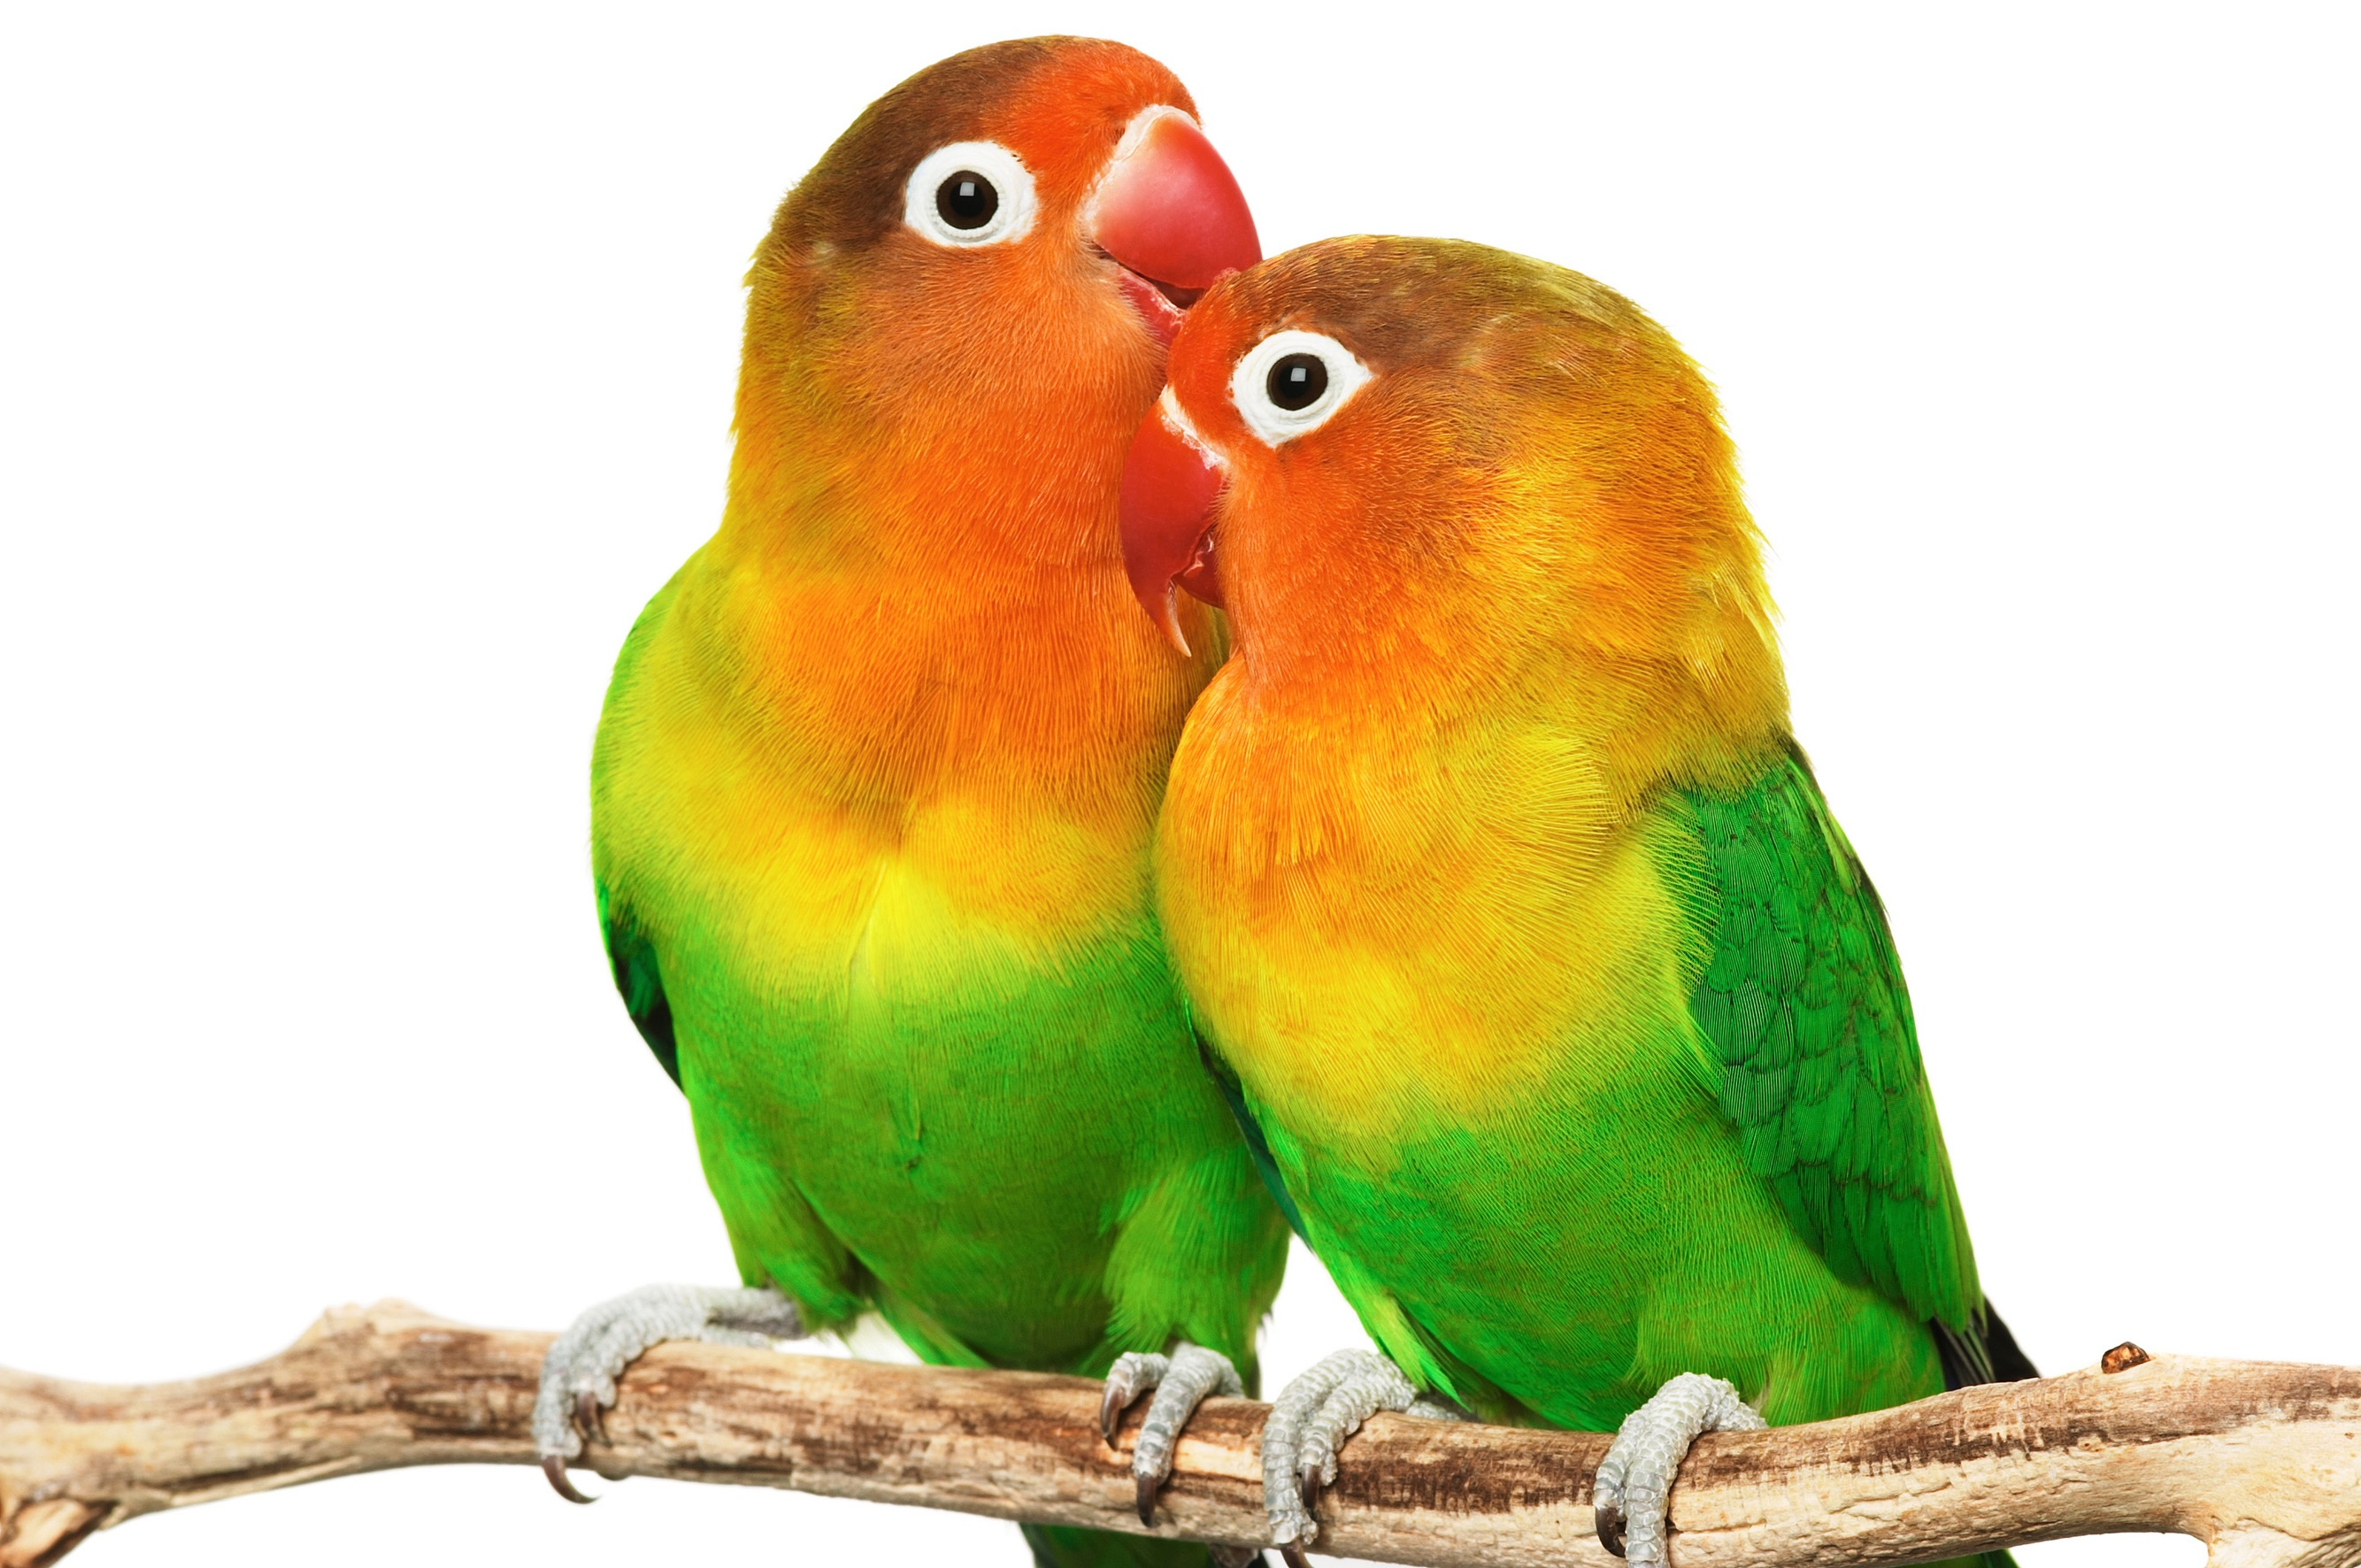 Awesome Love Birds Full Screen Wallpaper - Love Birds PNG